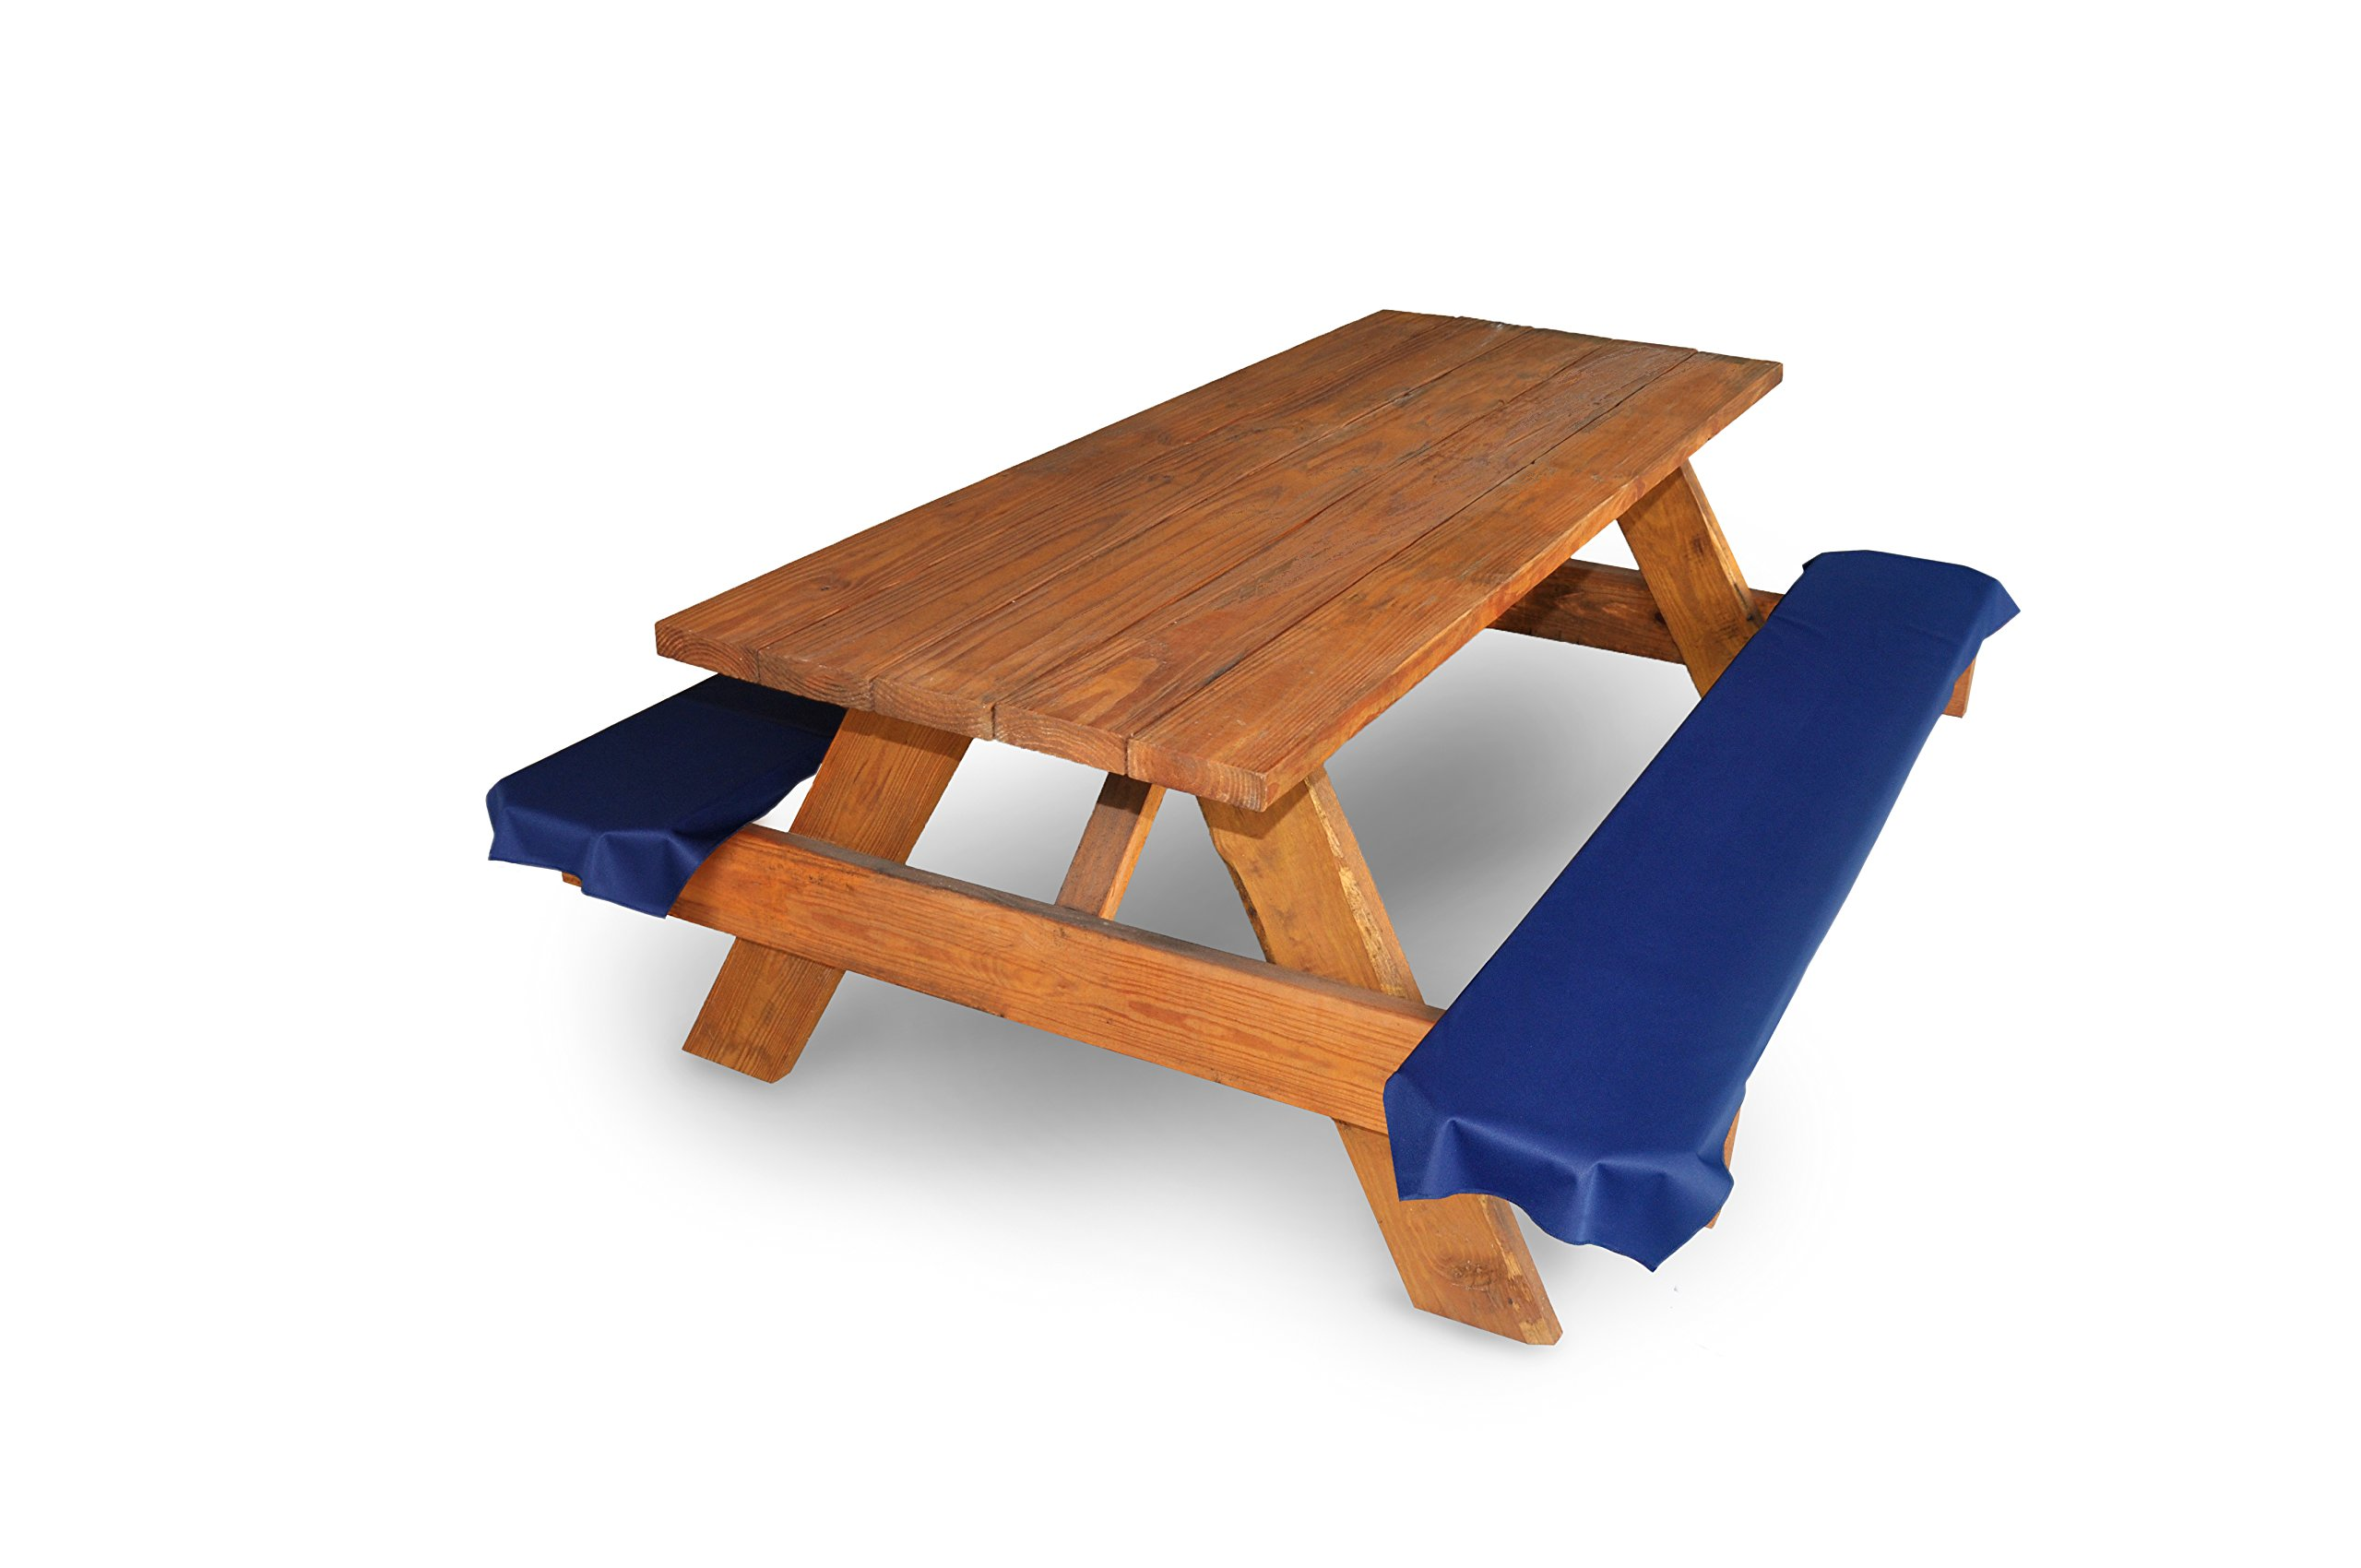 Buy Picniccovers Picnic Table Seat Covers In Cheap Price On Alibaba Com